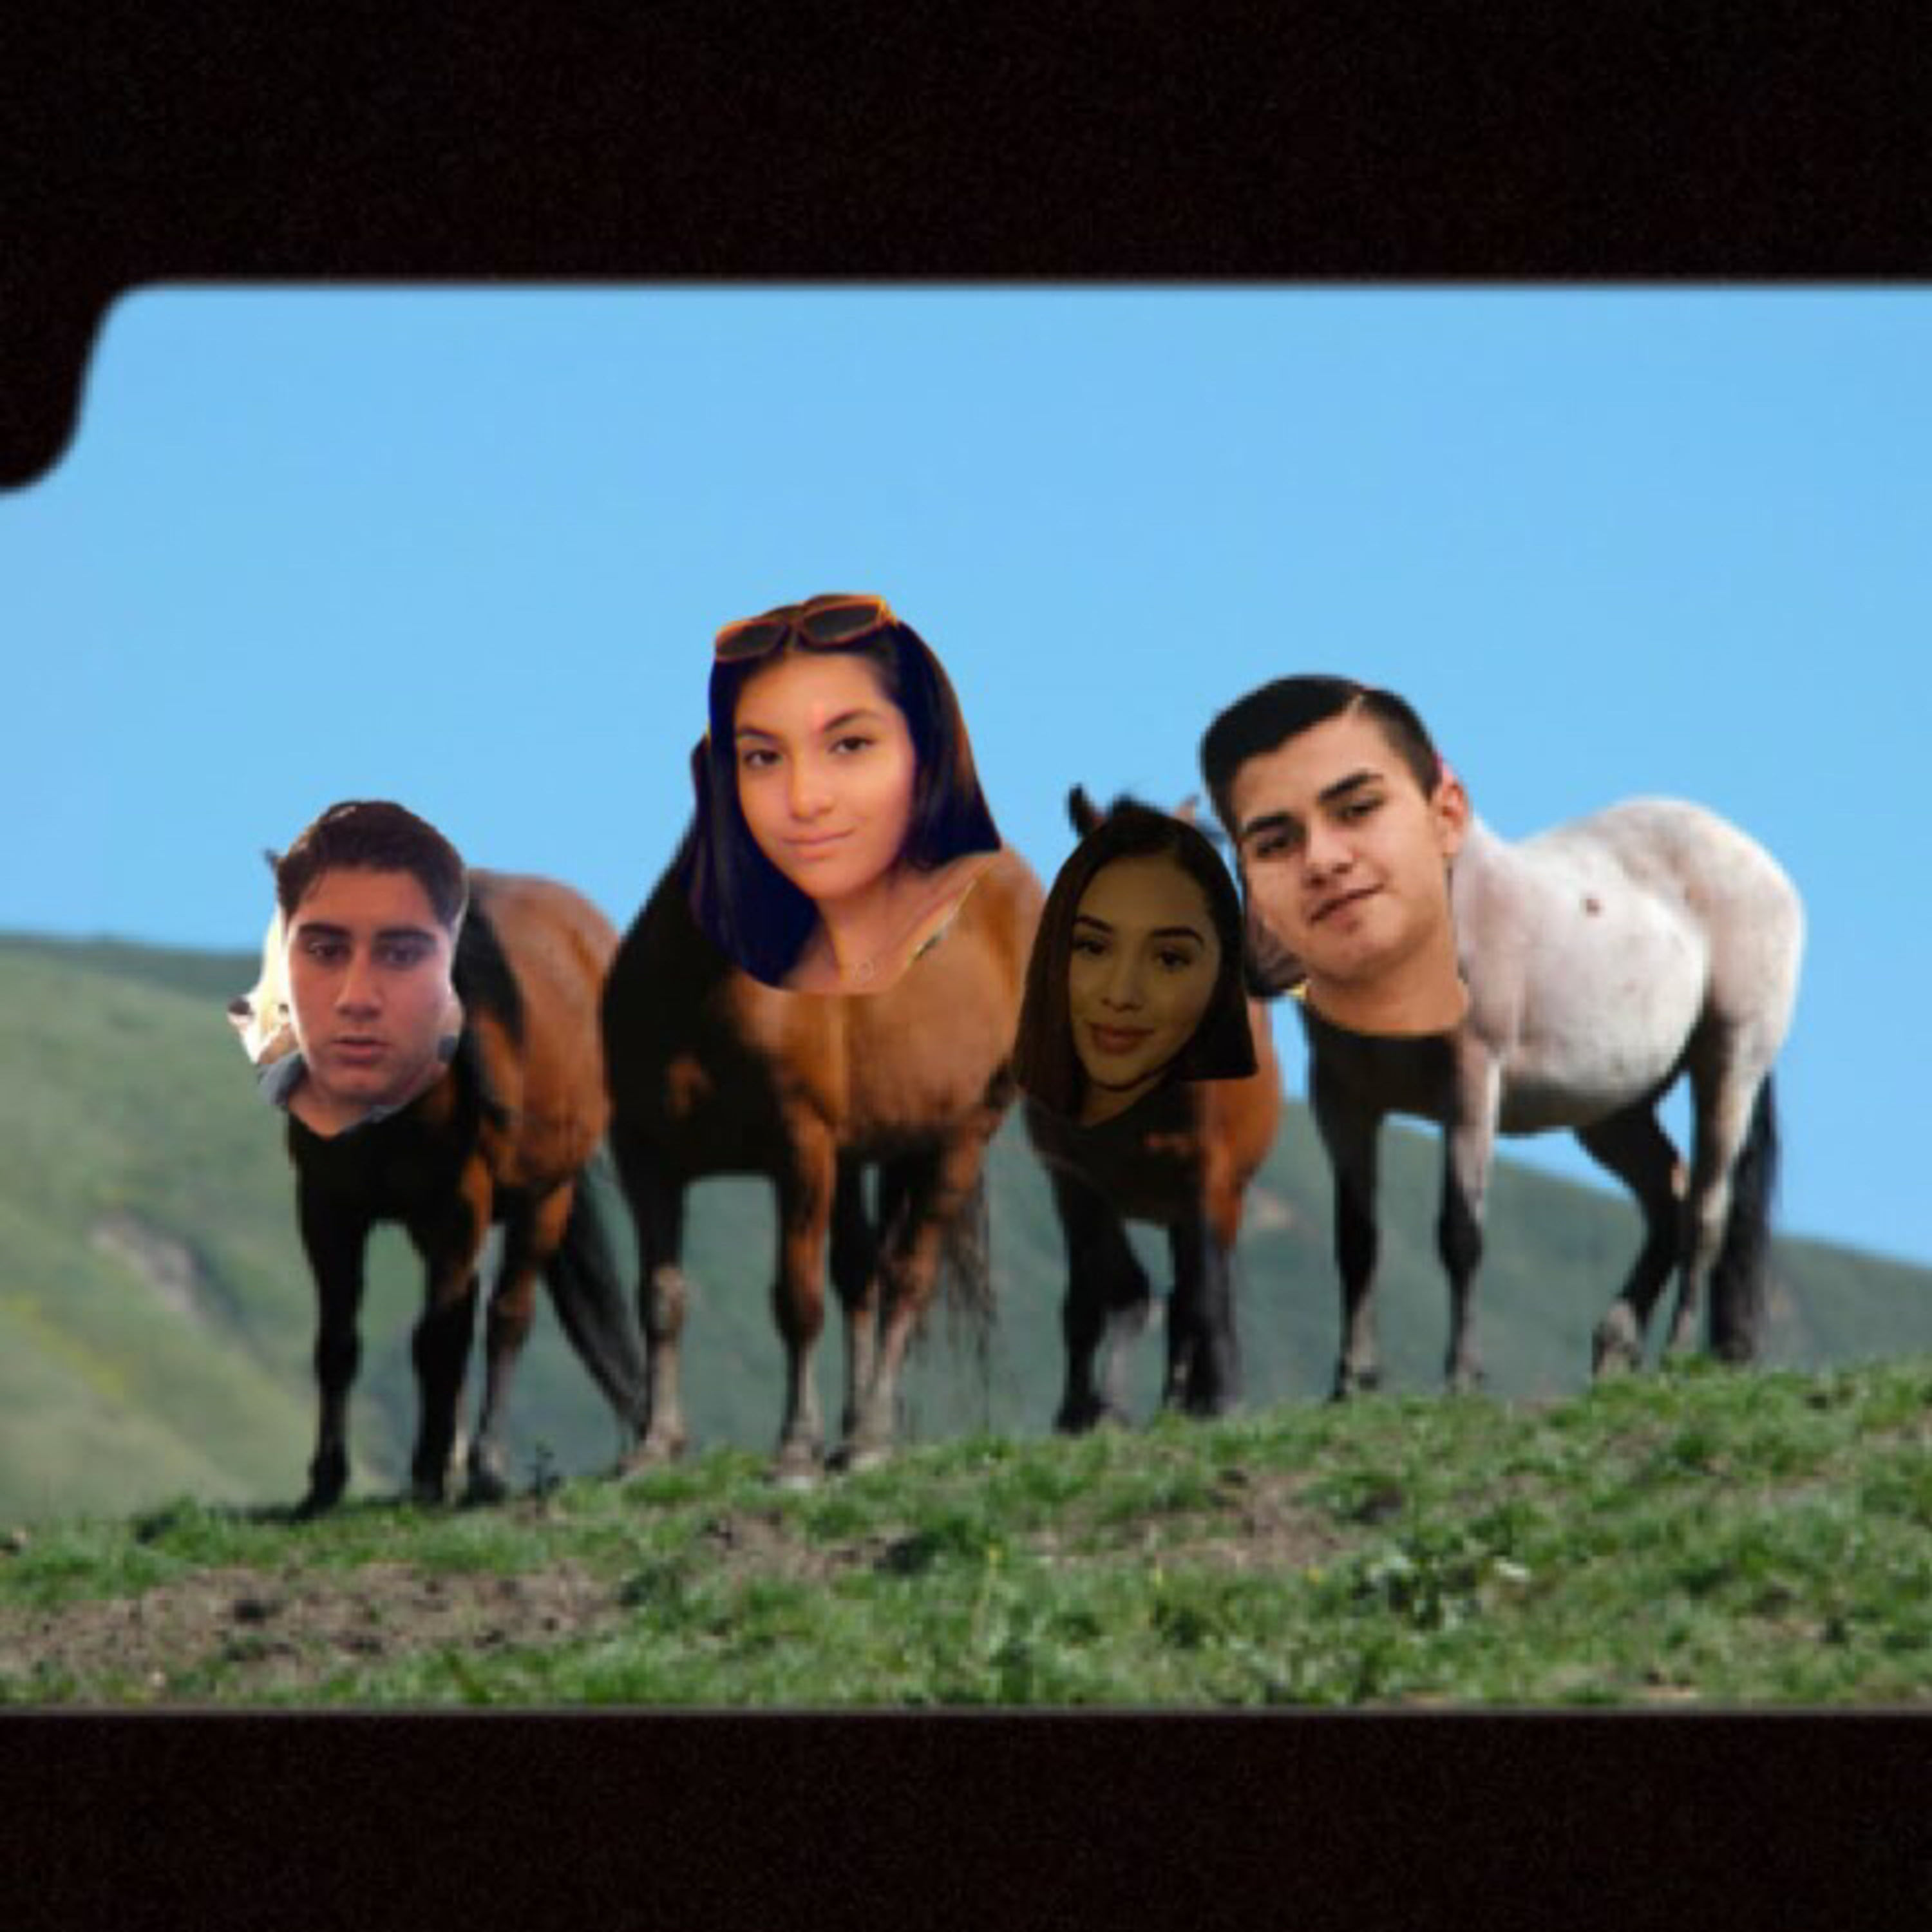 Episode 2: Imanol gets exposed by Meli and Valerie!!!